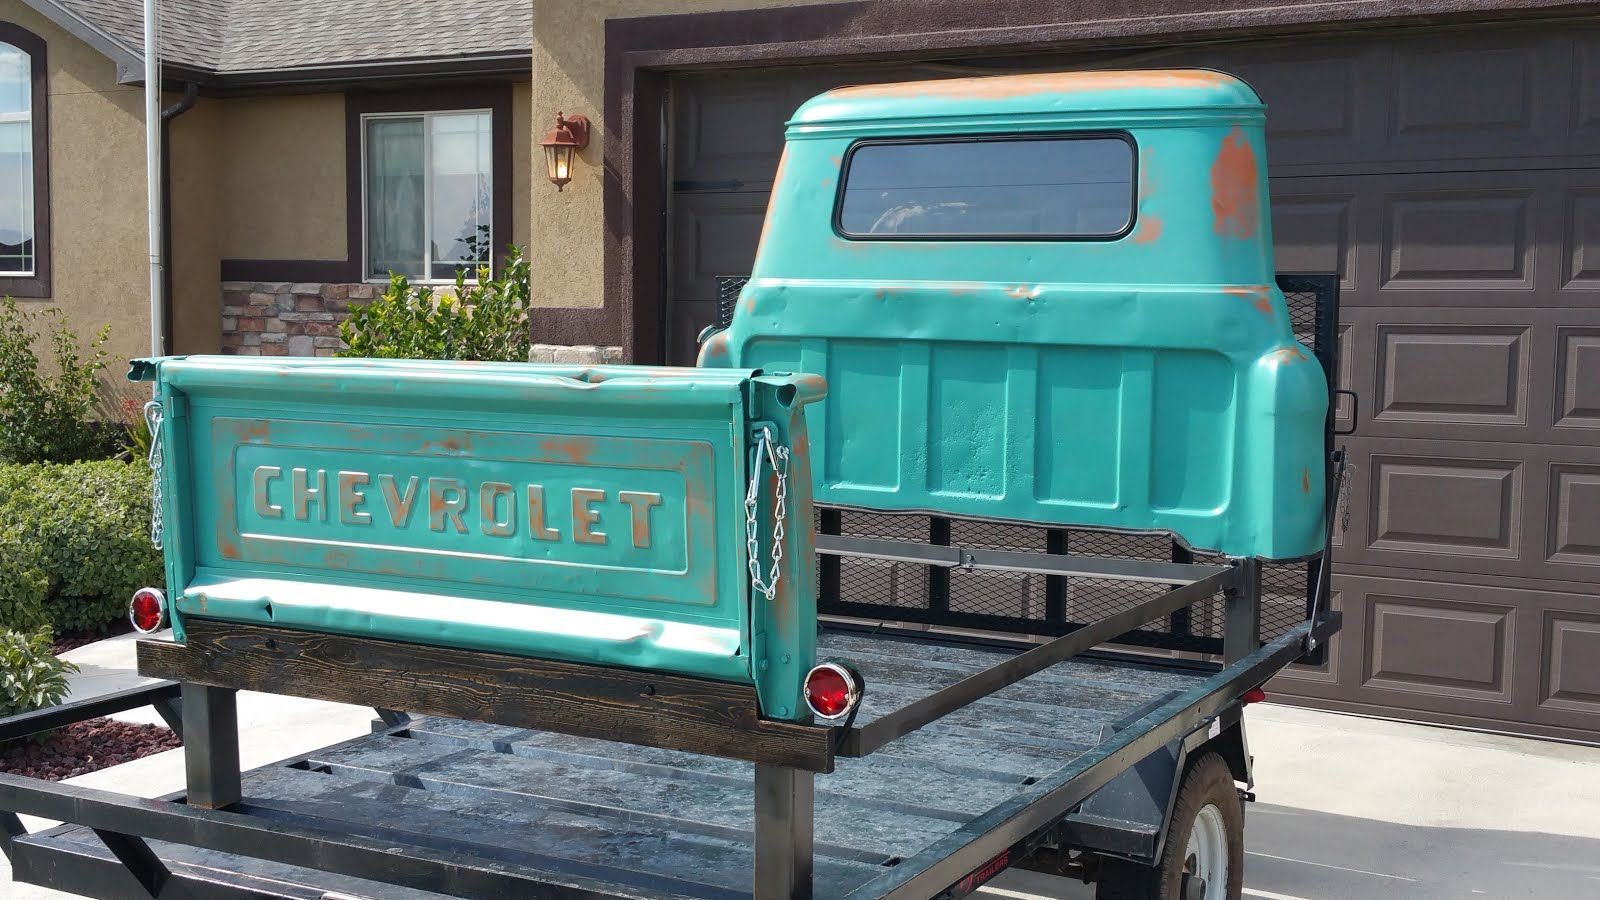 Old Truck made into a Bed Bed frames for sale, Vintage